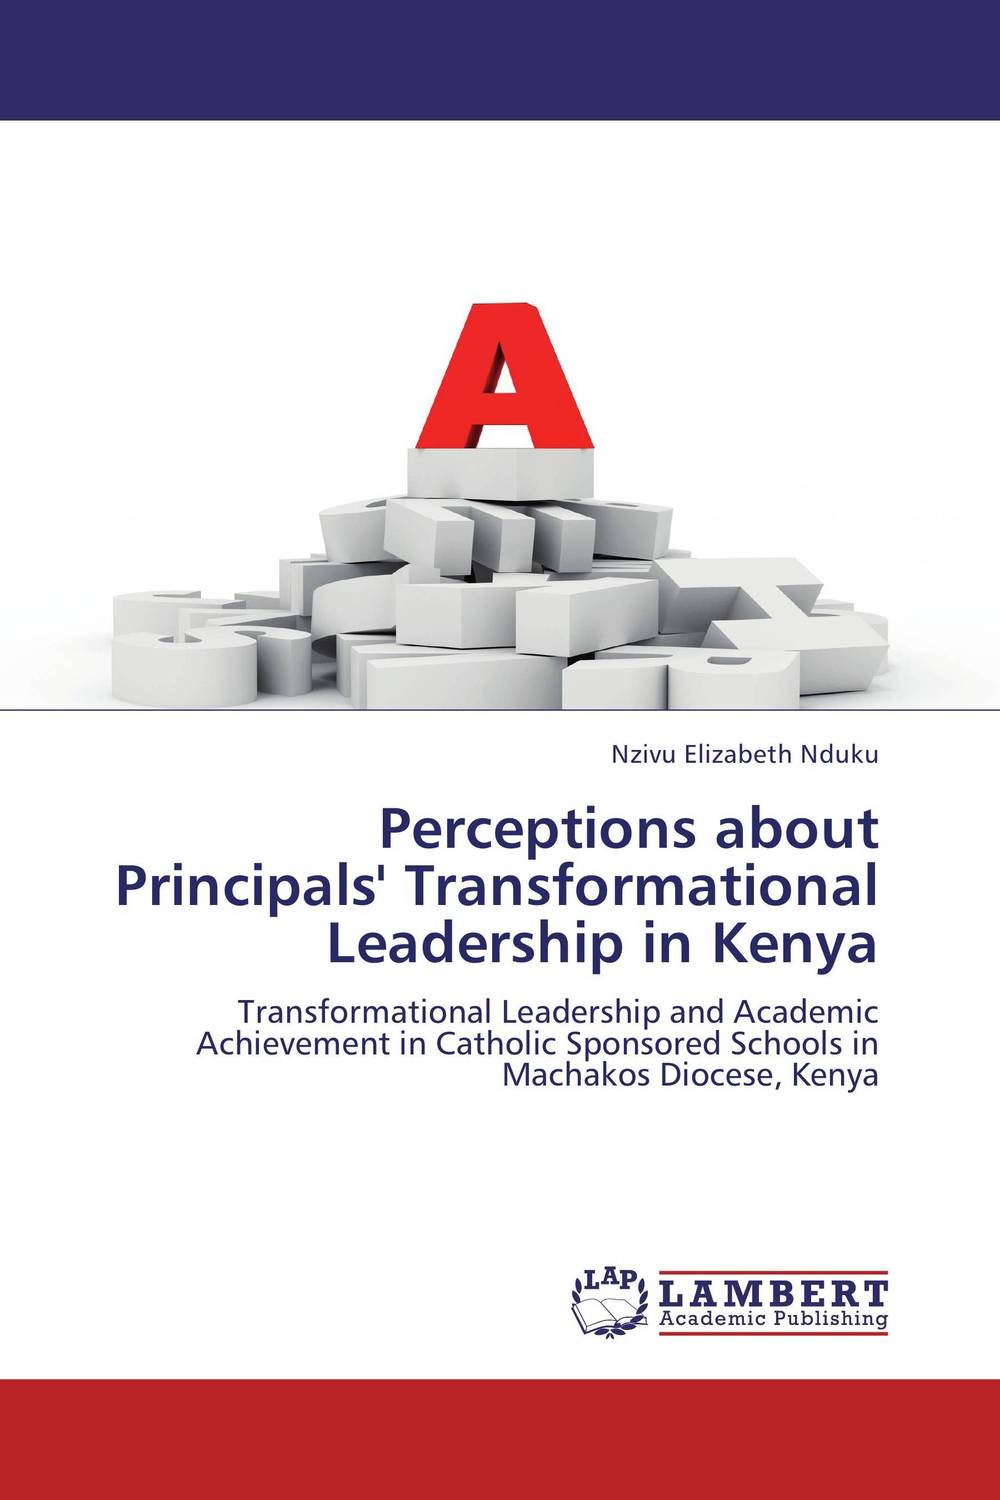 Perceptions about Principals' Transformational Leadership in Kenya female head teachers administrative challenges in schools in kenya